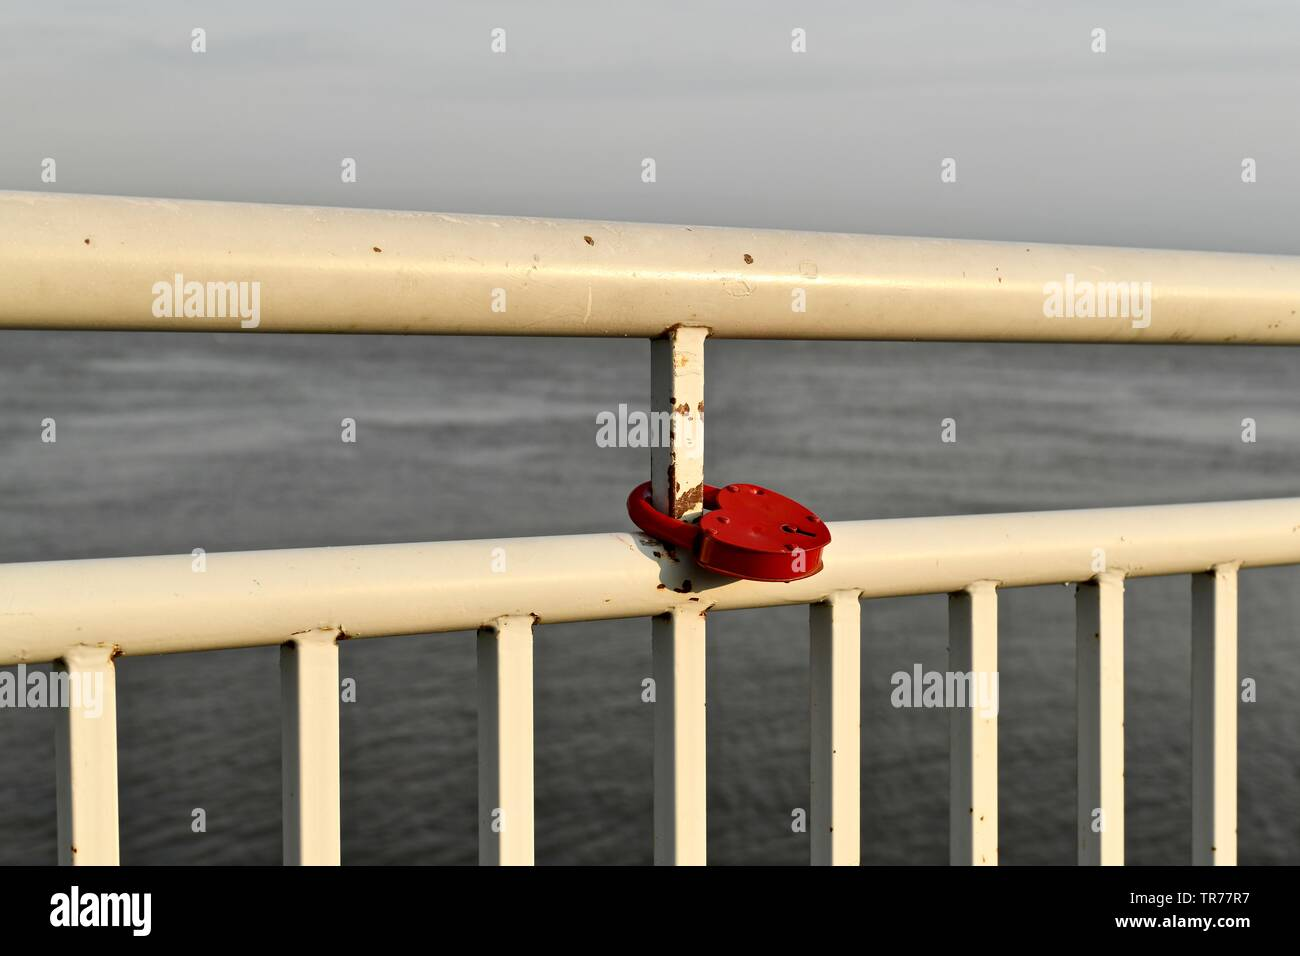 A red metal lock, in the shape of a heart, hangs on the slightly rusty white railing of the river embankment. A railing of a metal pipe divides the ba - Stock Image